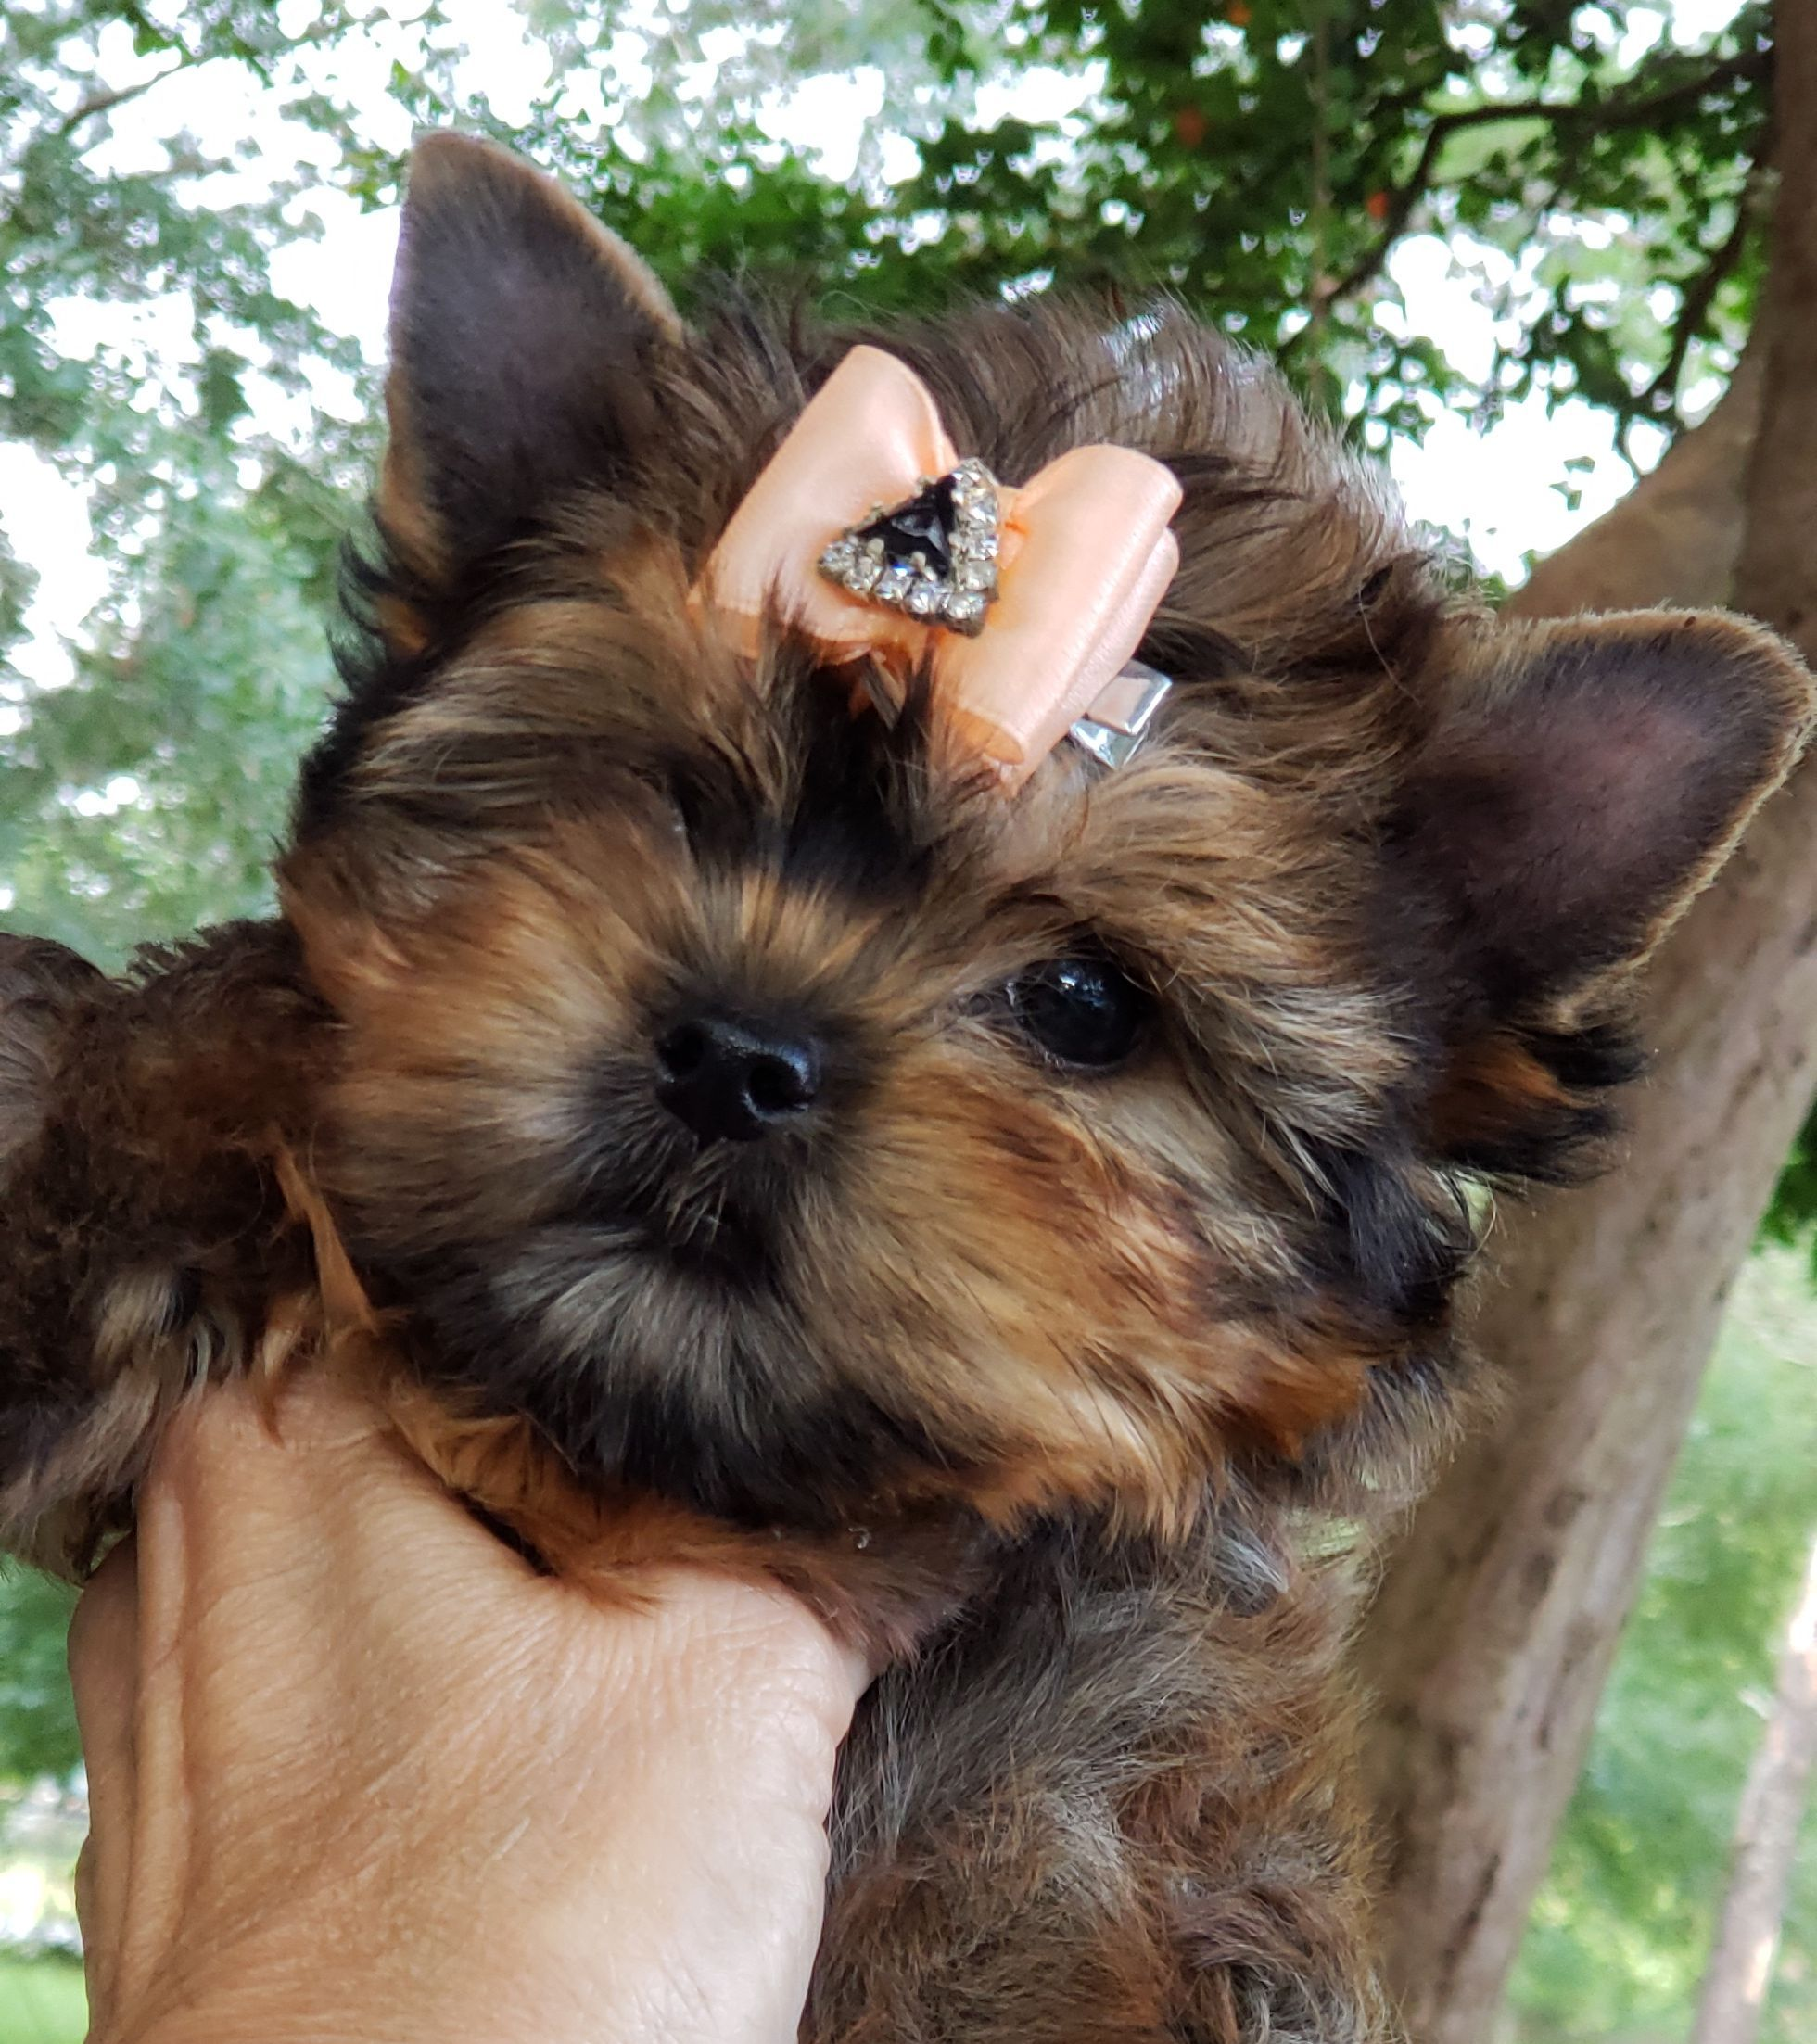 12 Week Old Female Exotic Sable Yorkshire Terrier Puppy For Sale